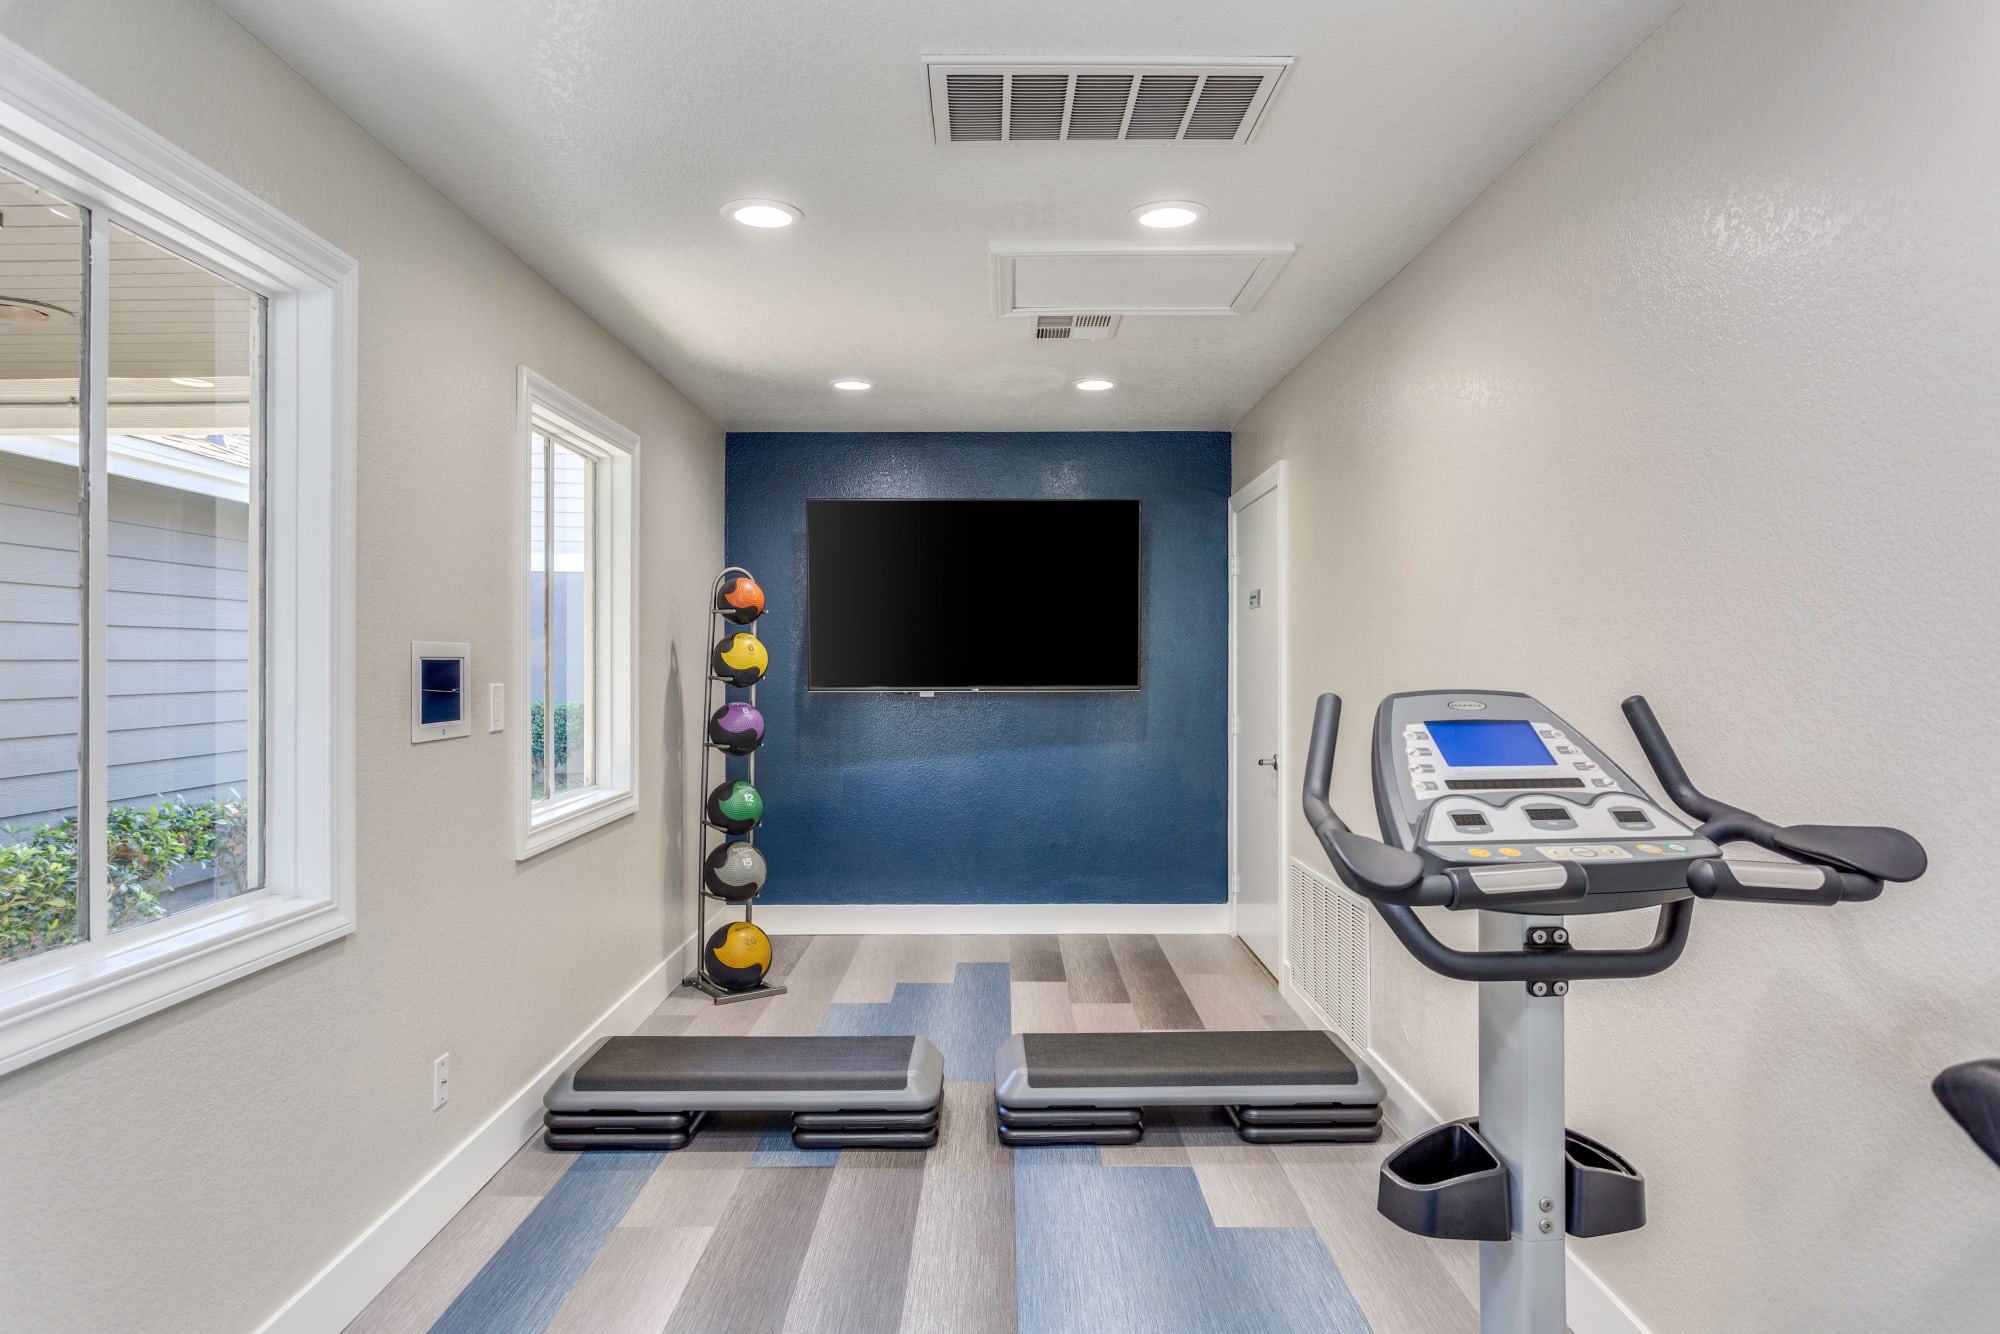 Fitness on demand room at Village Oaks in Chino Hills, California